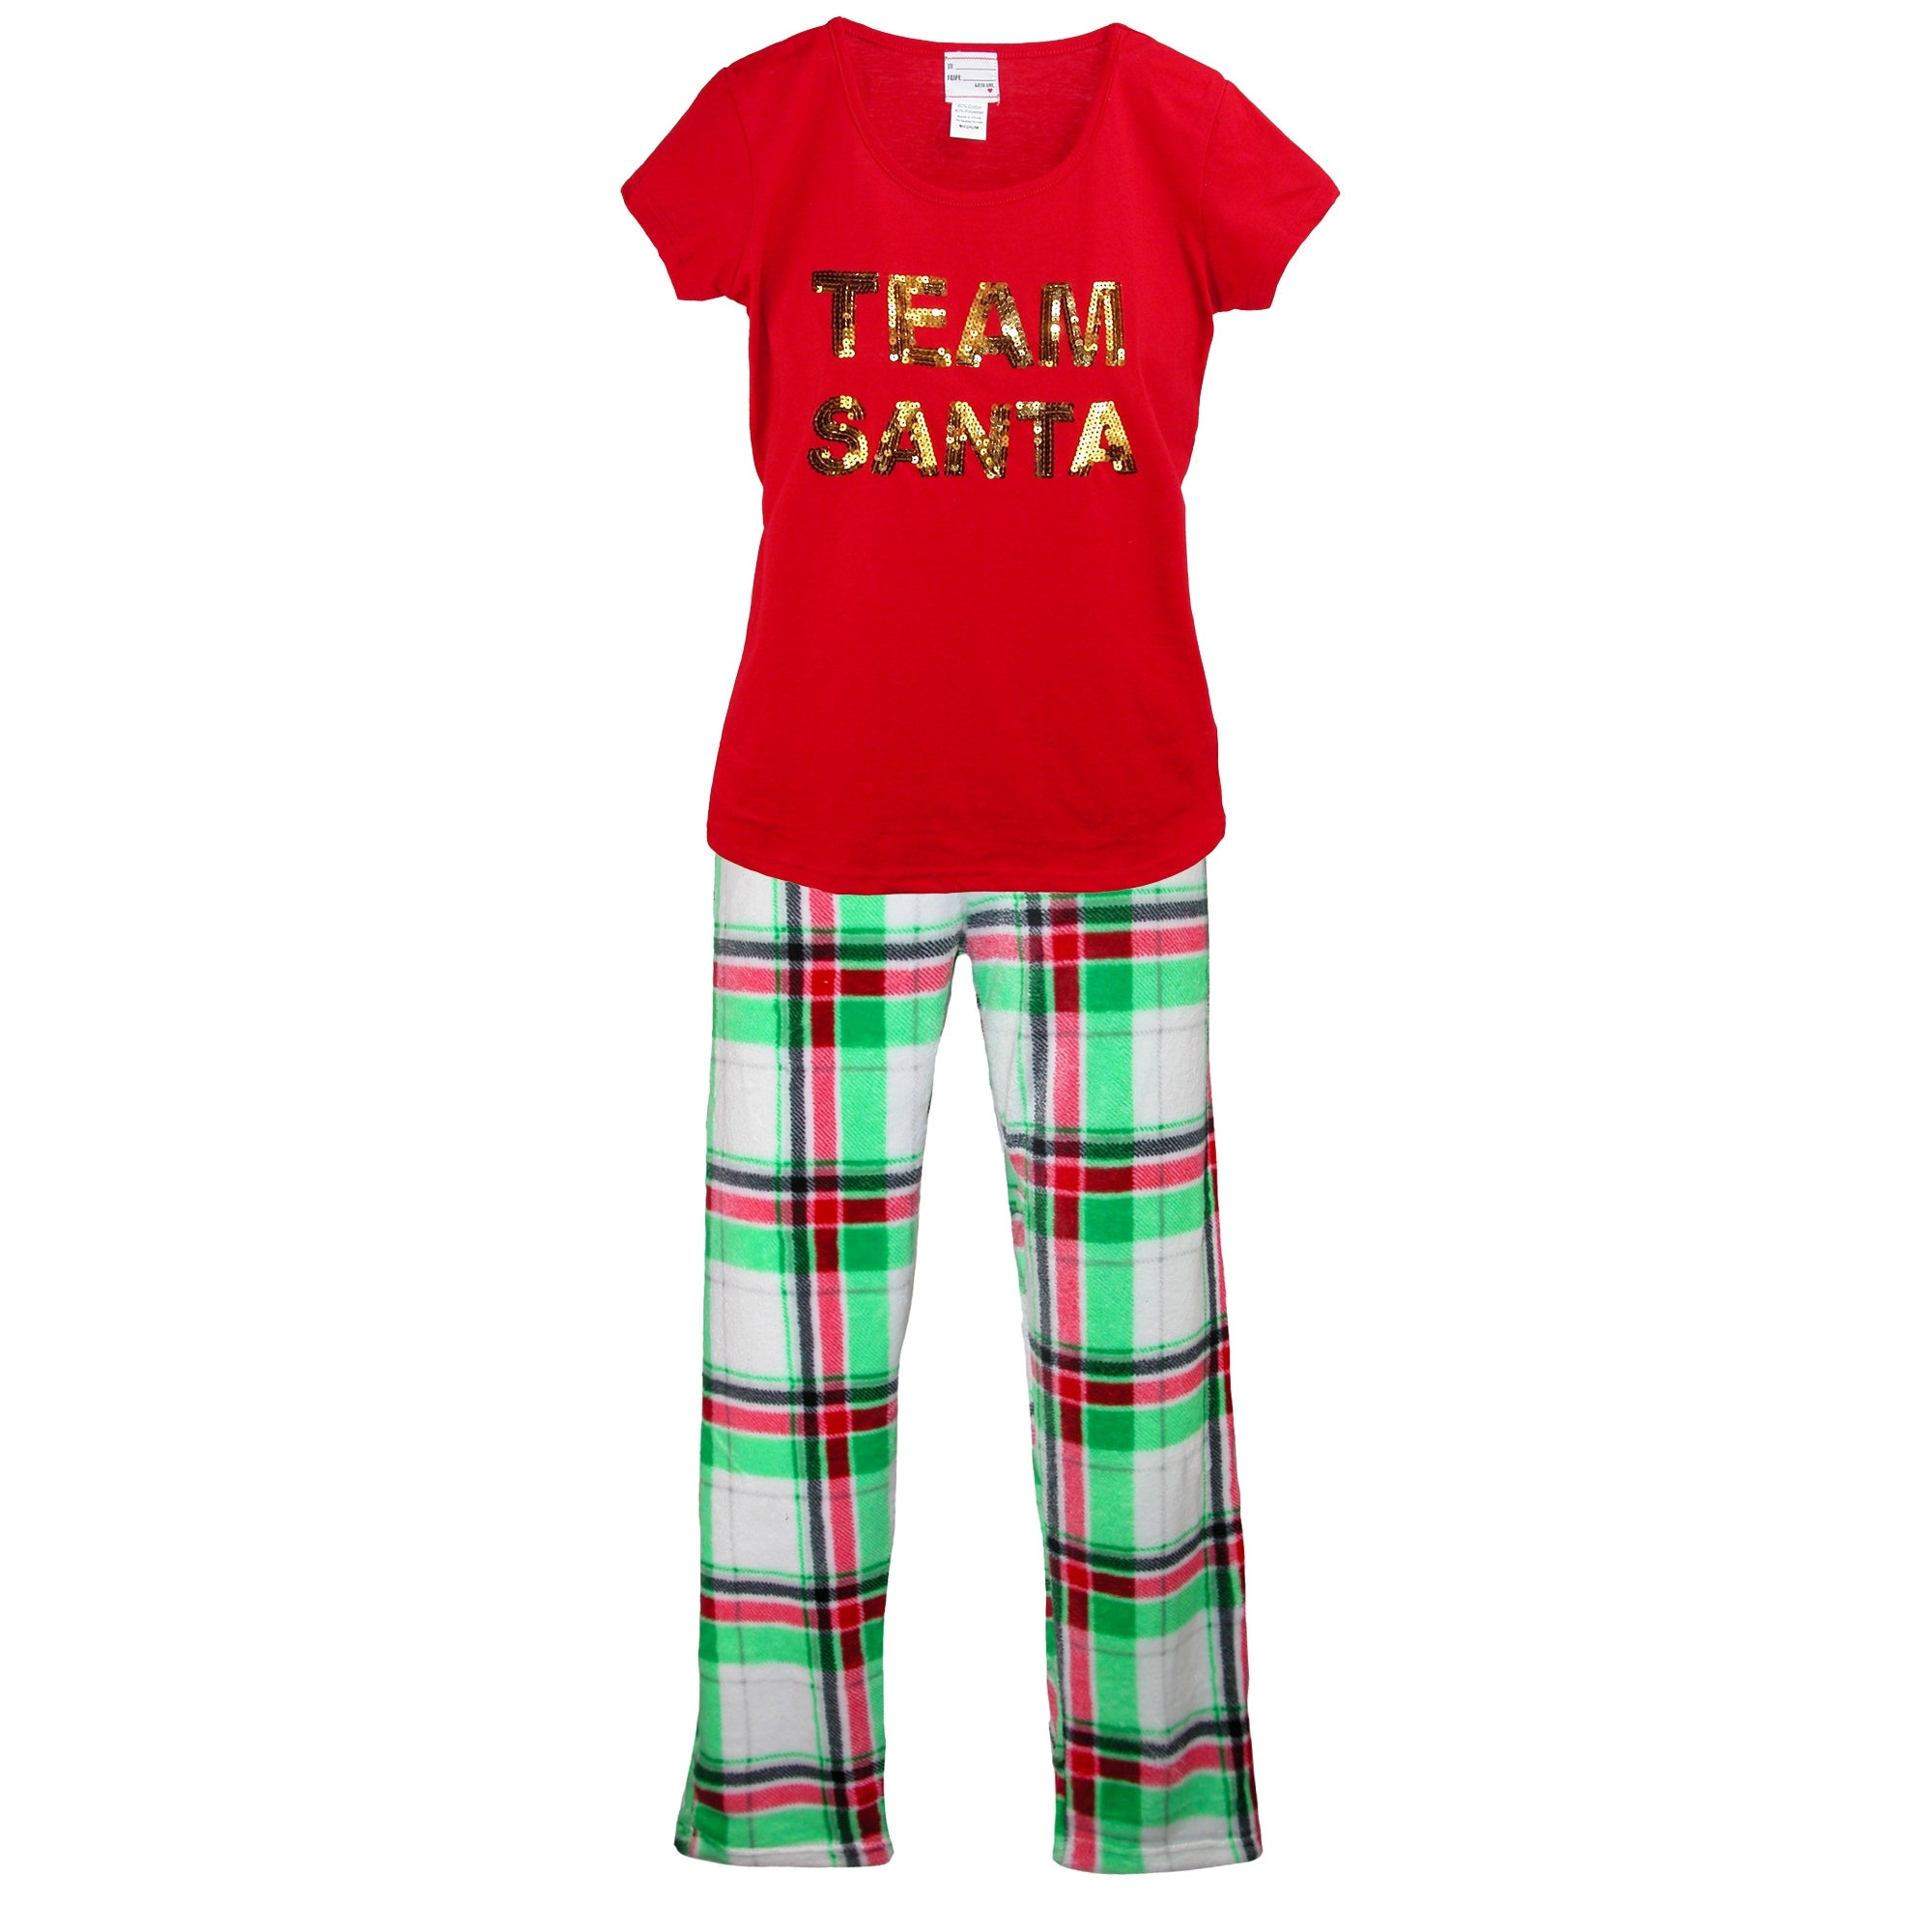 Plus Size Christmas Pajamas.Not A Morning Person Women S Plus Size Christmas Pajama Set